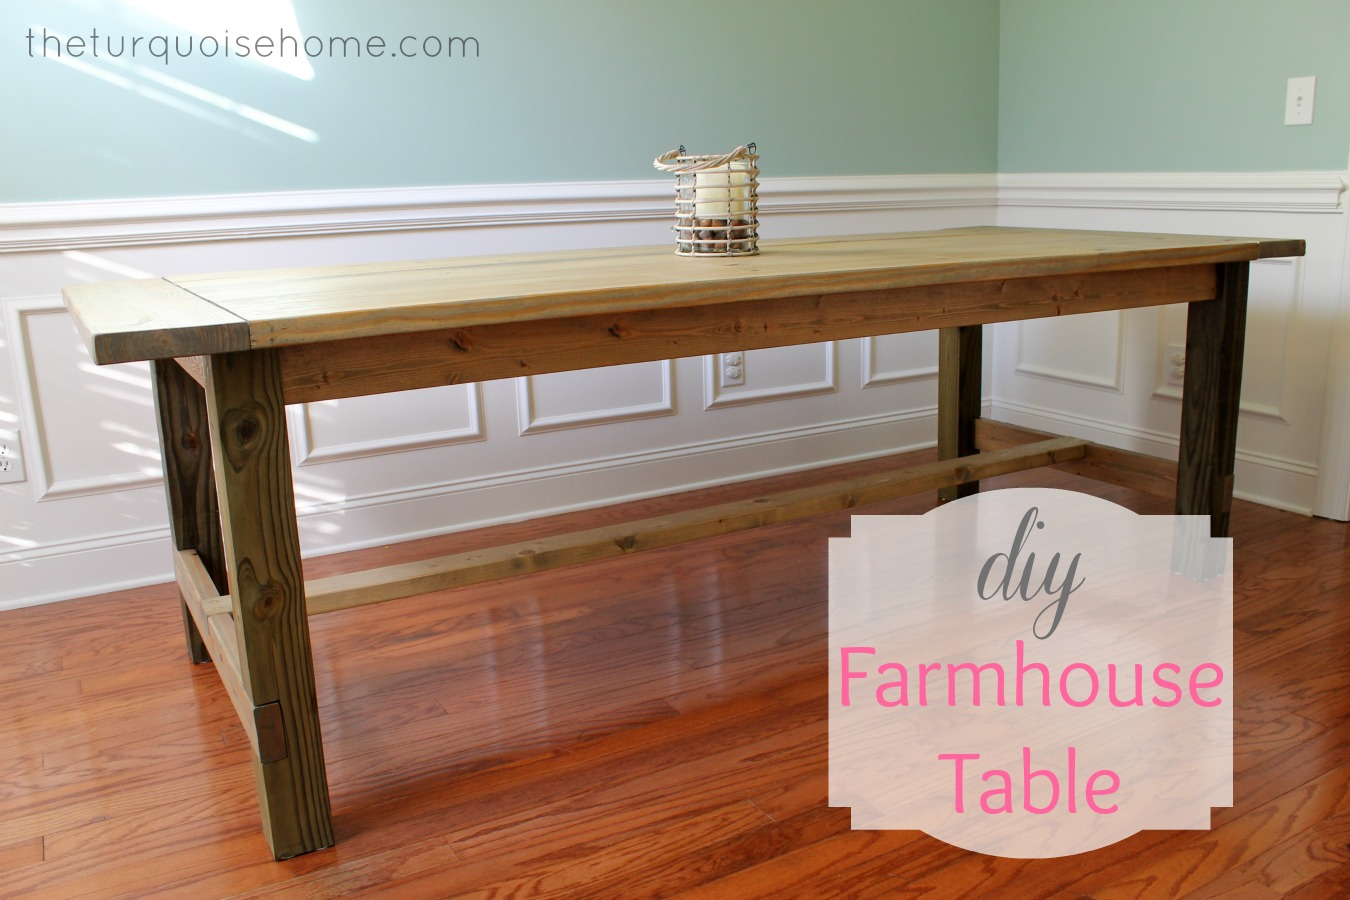 Farm House Kitchen Table Monogram Towels Diy Farmhouse